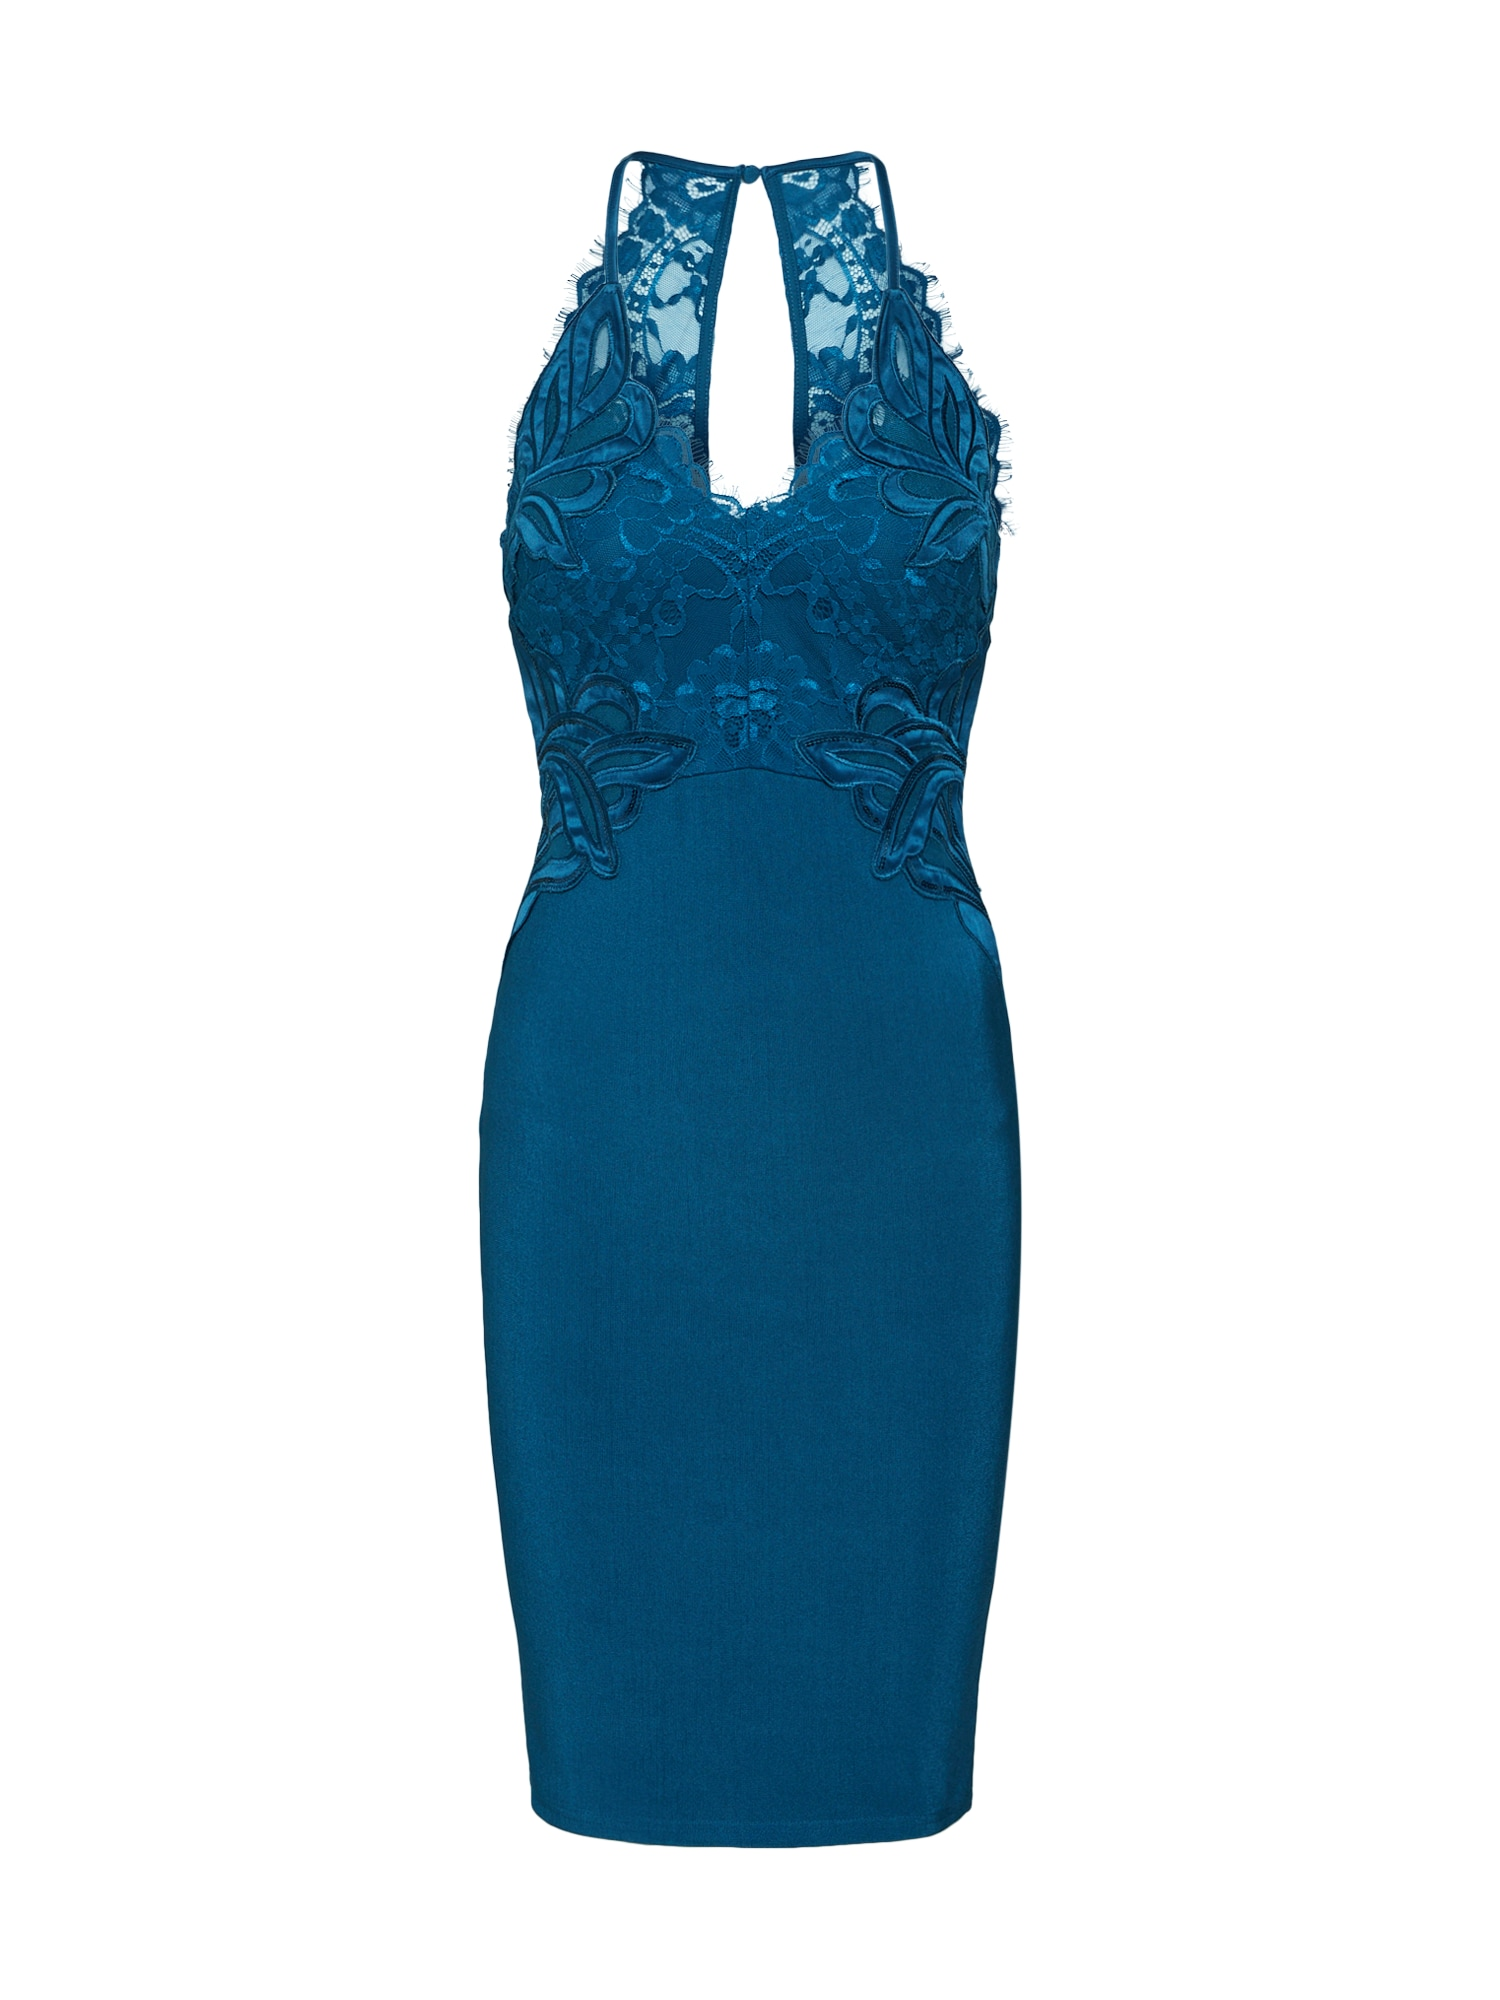 Koktejlové šaty TEAL APPLIQUE HIGH NECK BODYCON petrolejová Lipsy